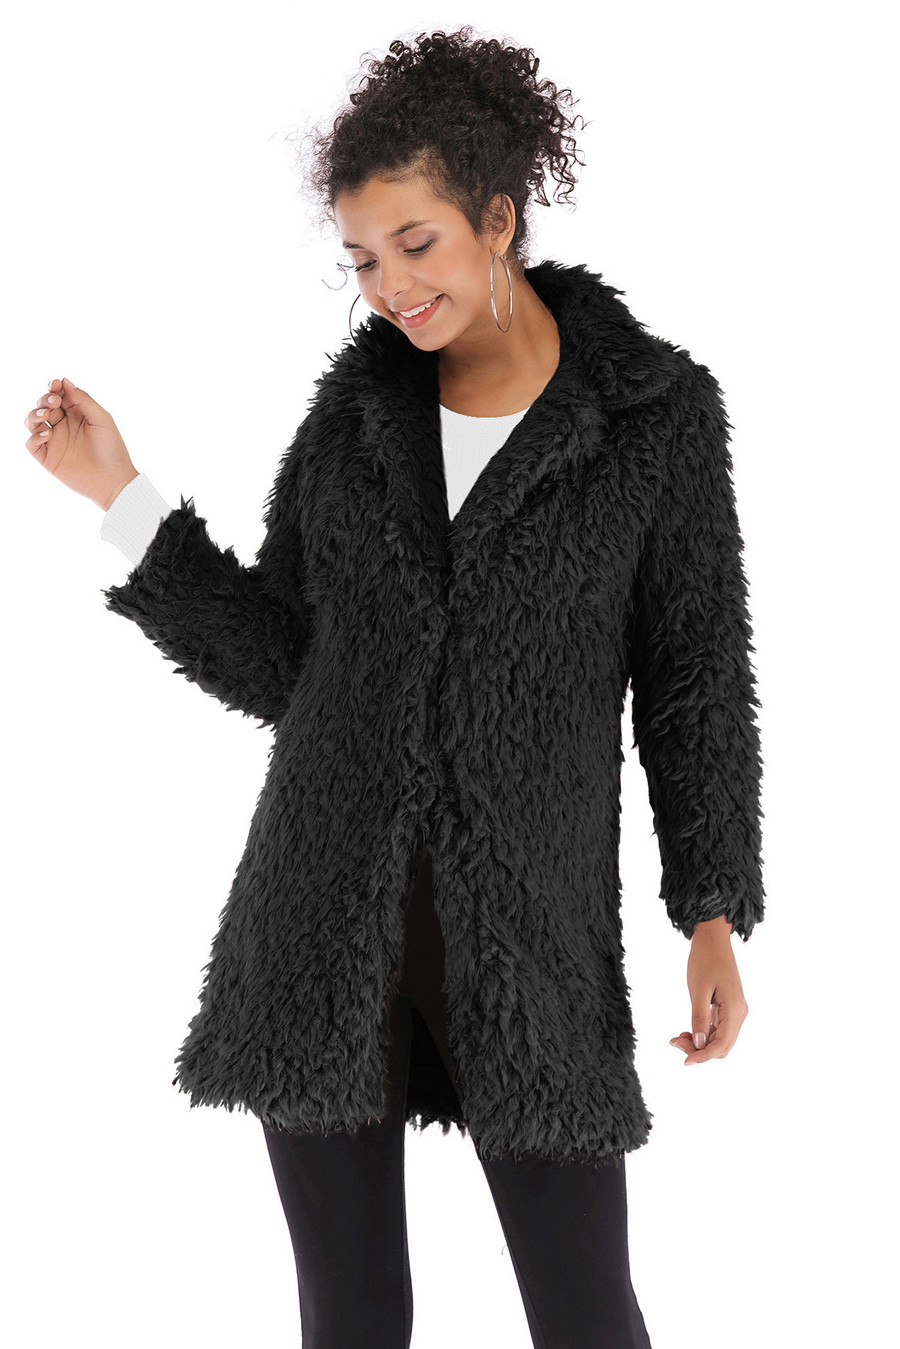 Gladiolus 2018 Women Autumn Winter Coat Turn-Down Collar Long Sleeve Covered Button Long Warm Shaggy Faux Fur Coat Women Jackets (21)